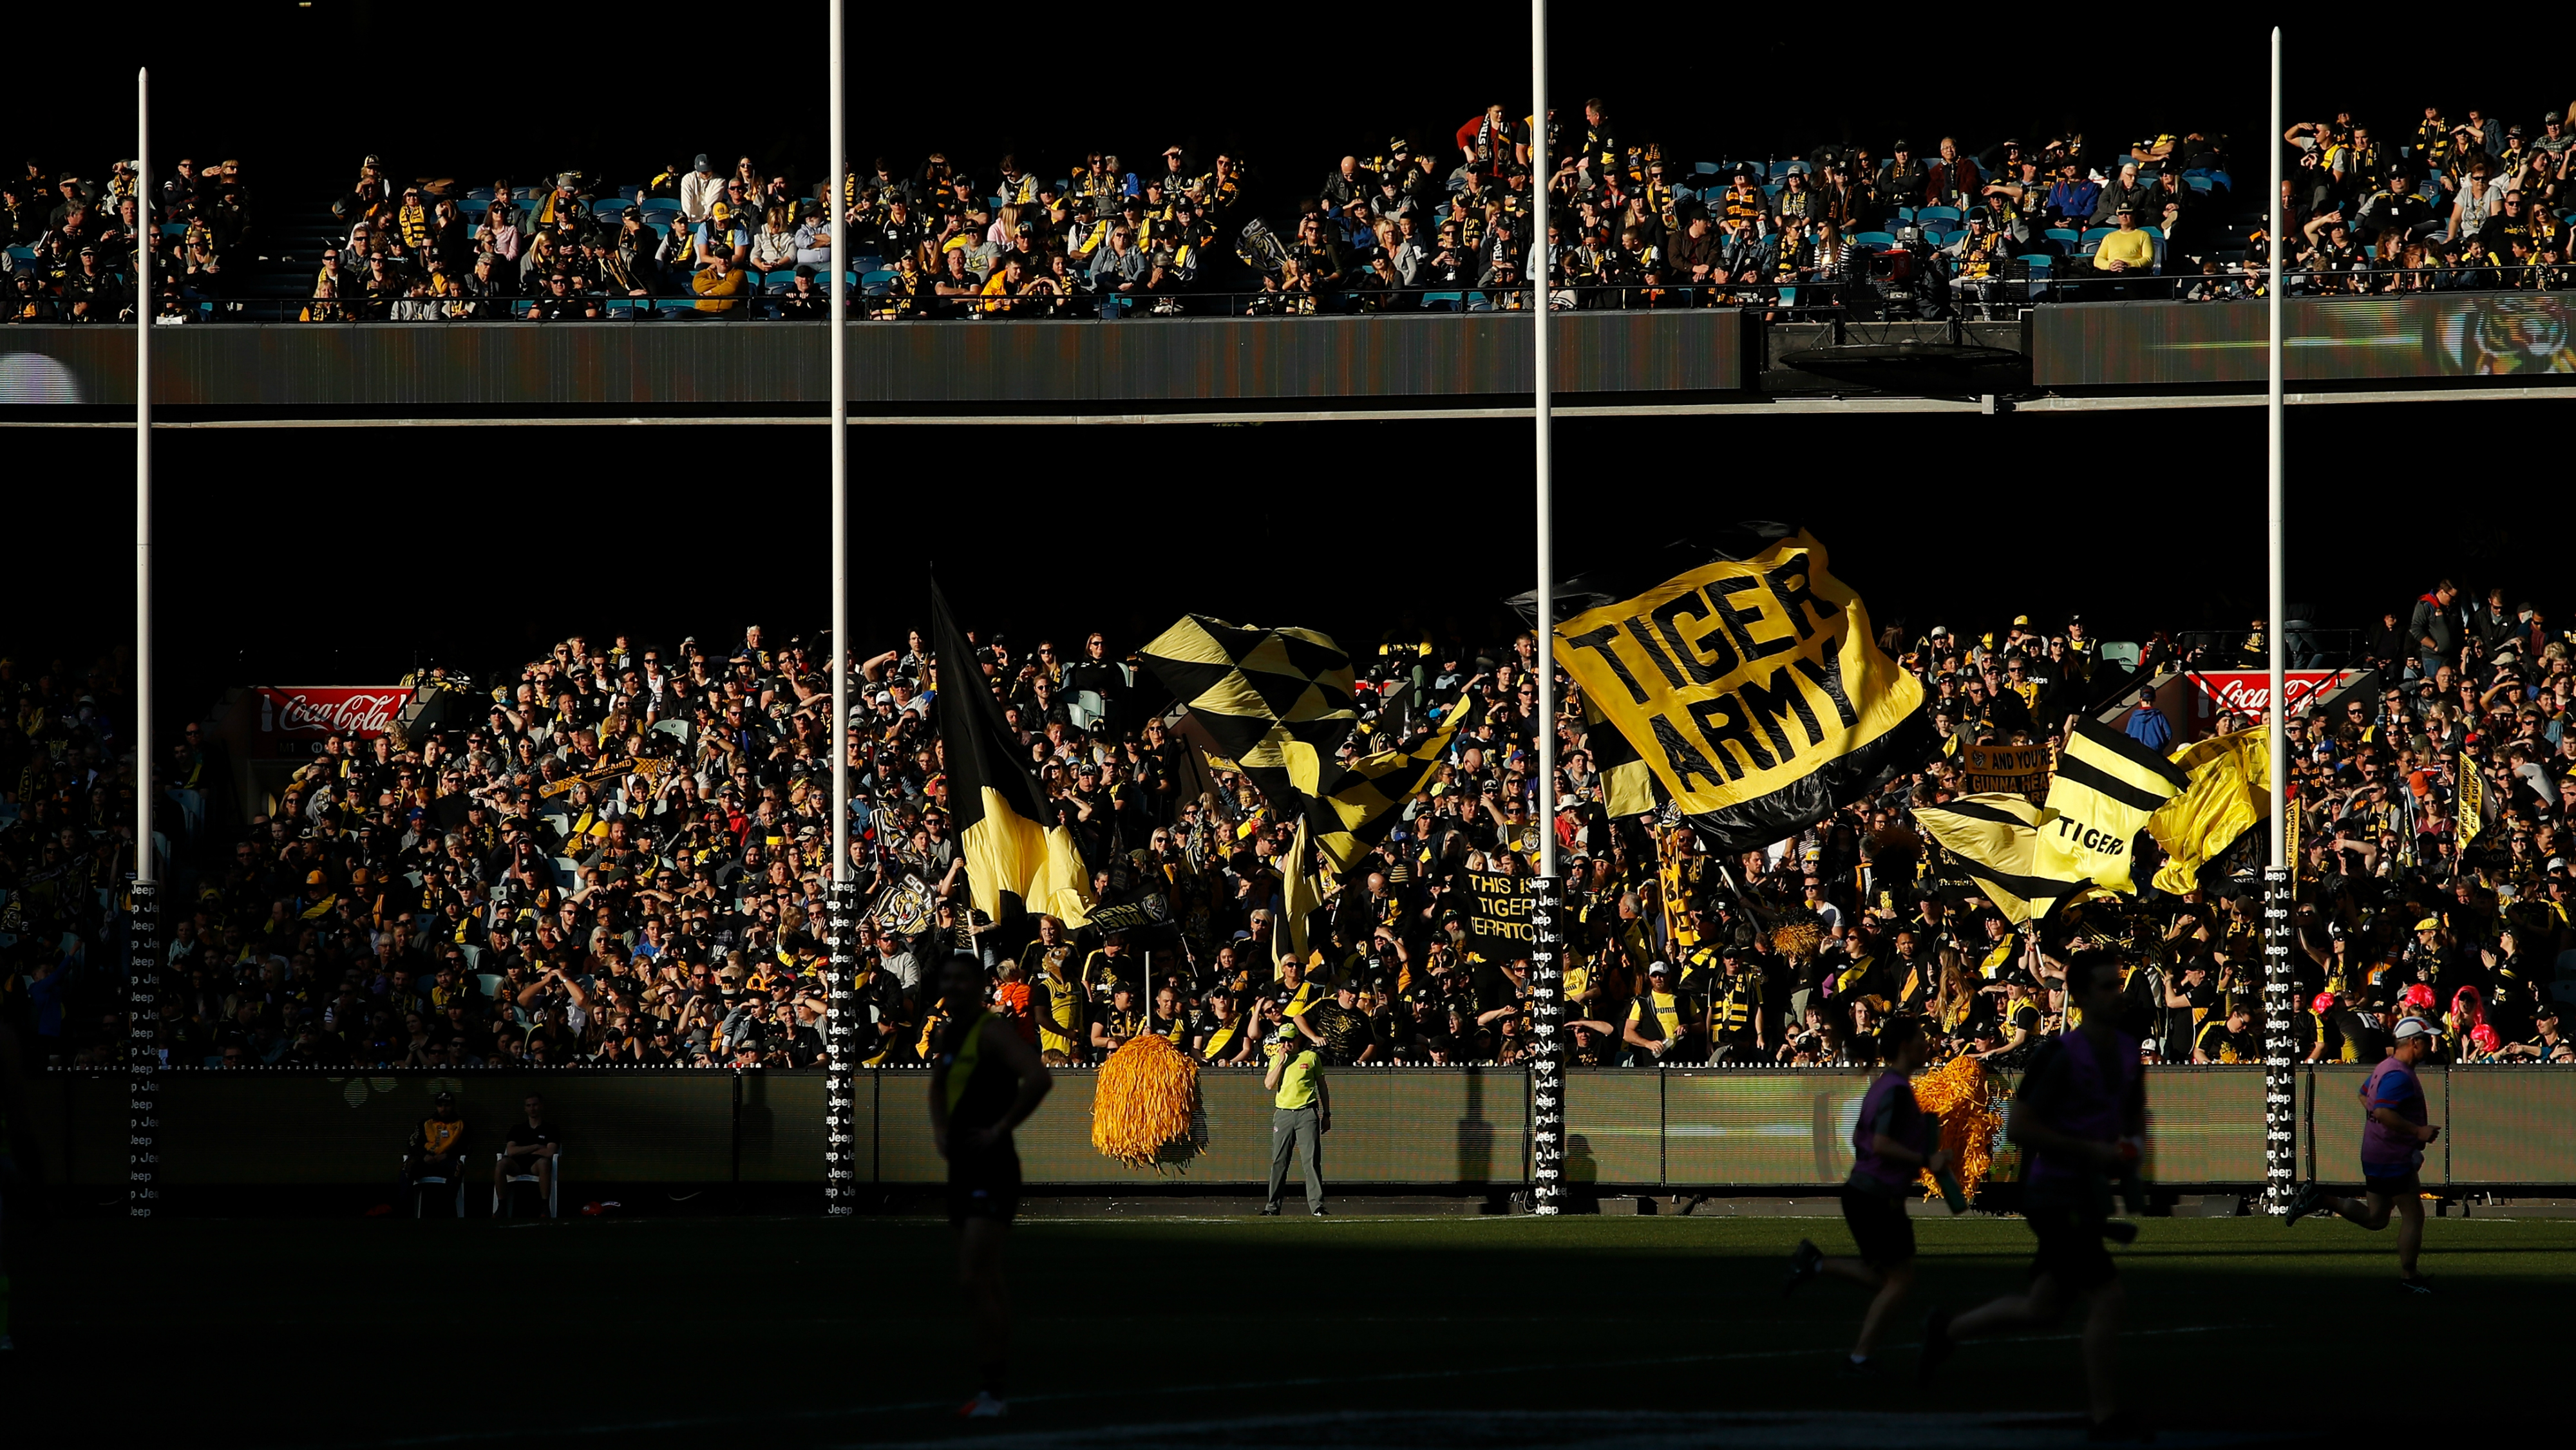 Undercover AFL spies monitoring crowd behaviour